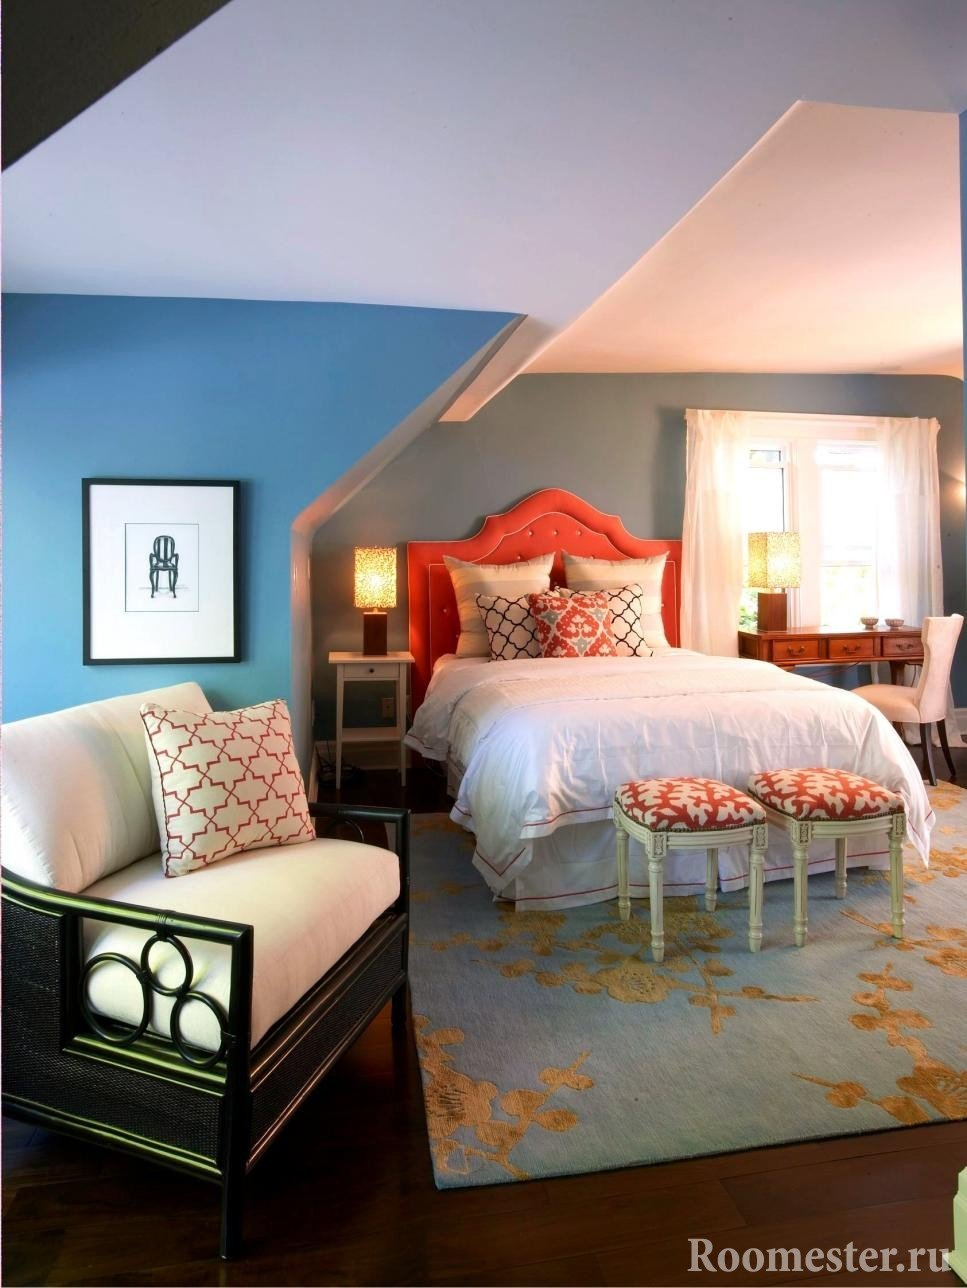 Red headboard and blue-gray walls